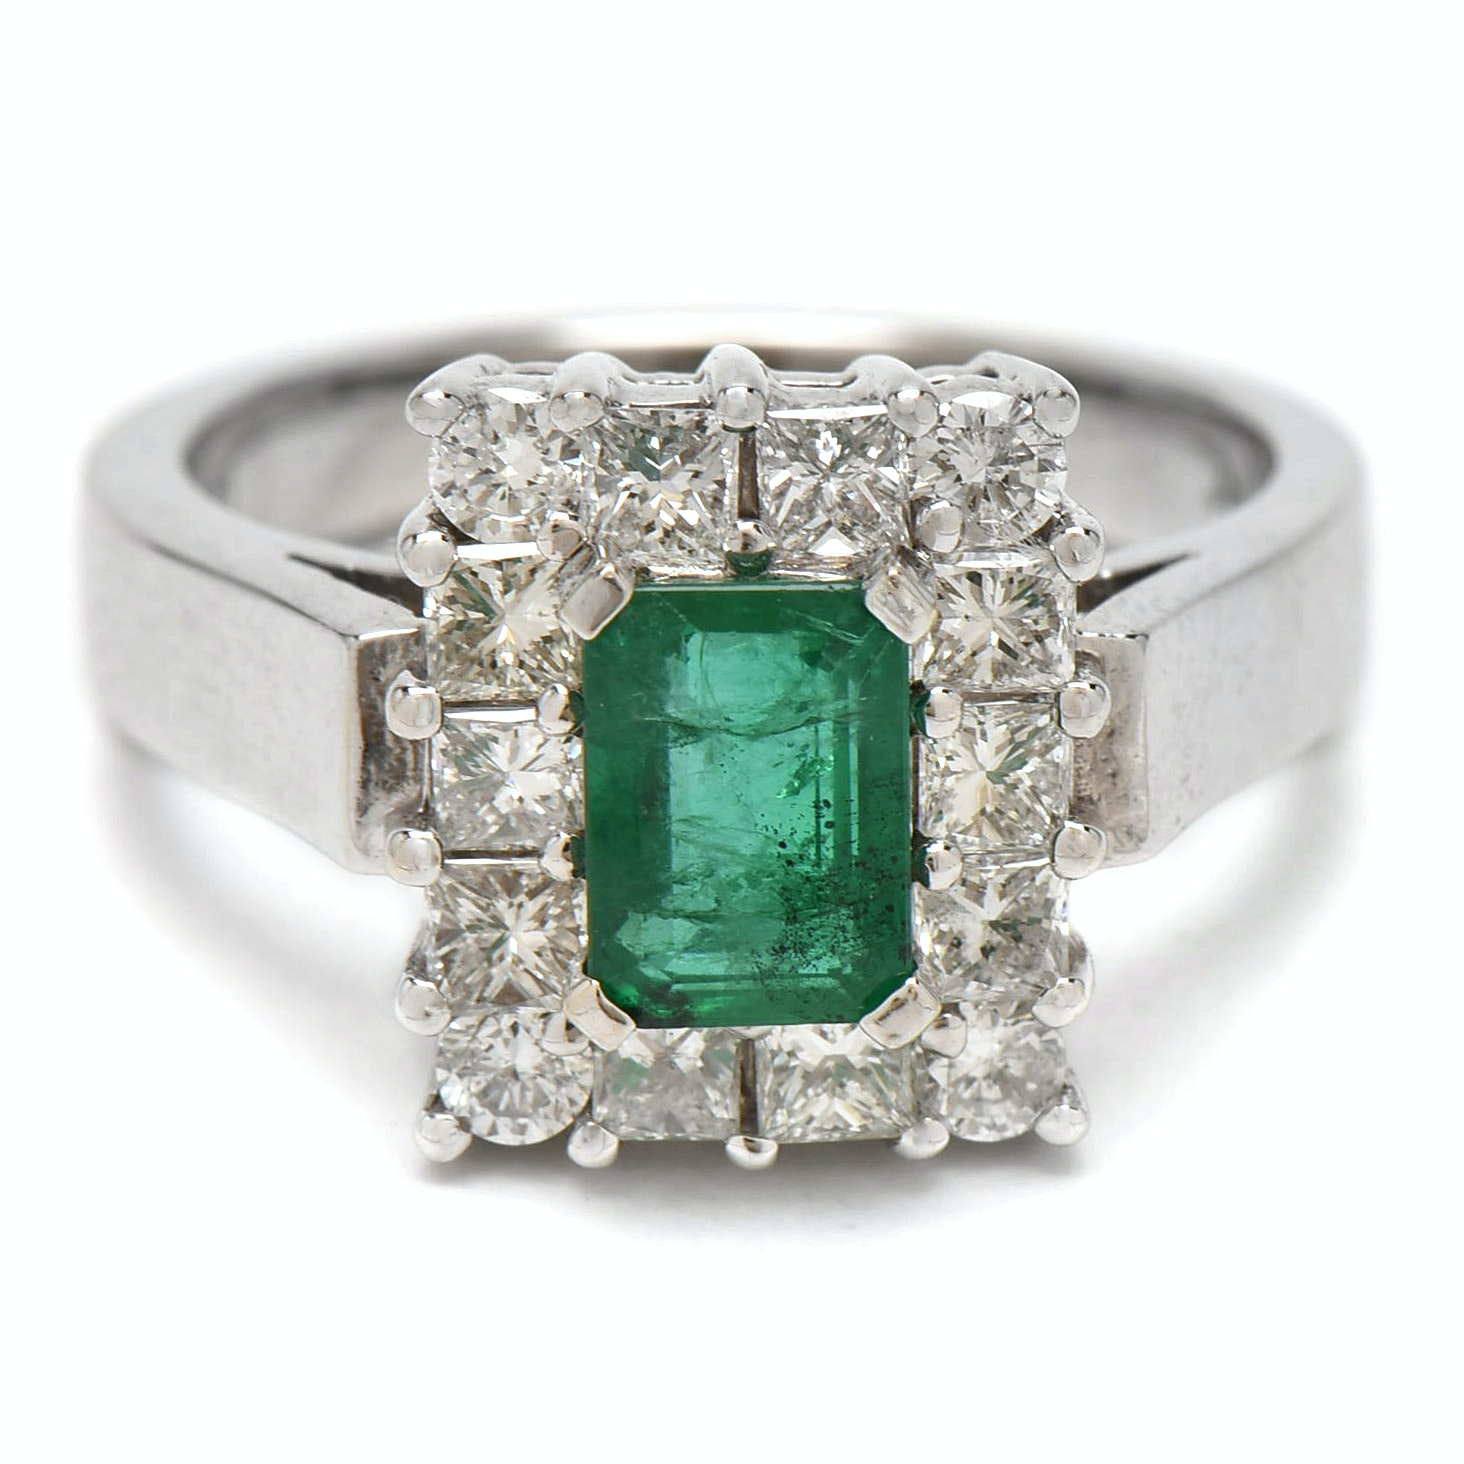 14K White Gold 0.79 CT Emerald and 1.24 CTW Diamond Ring